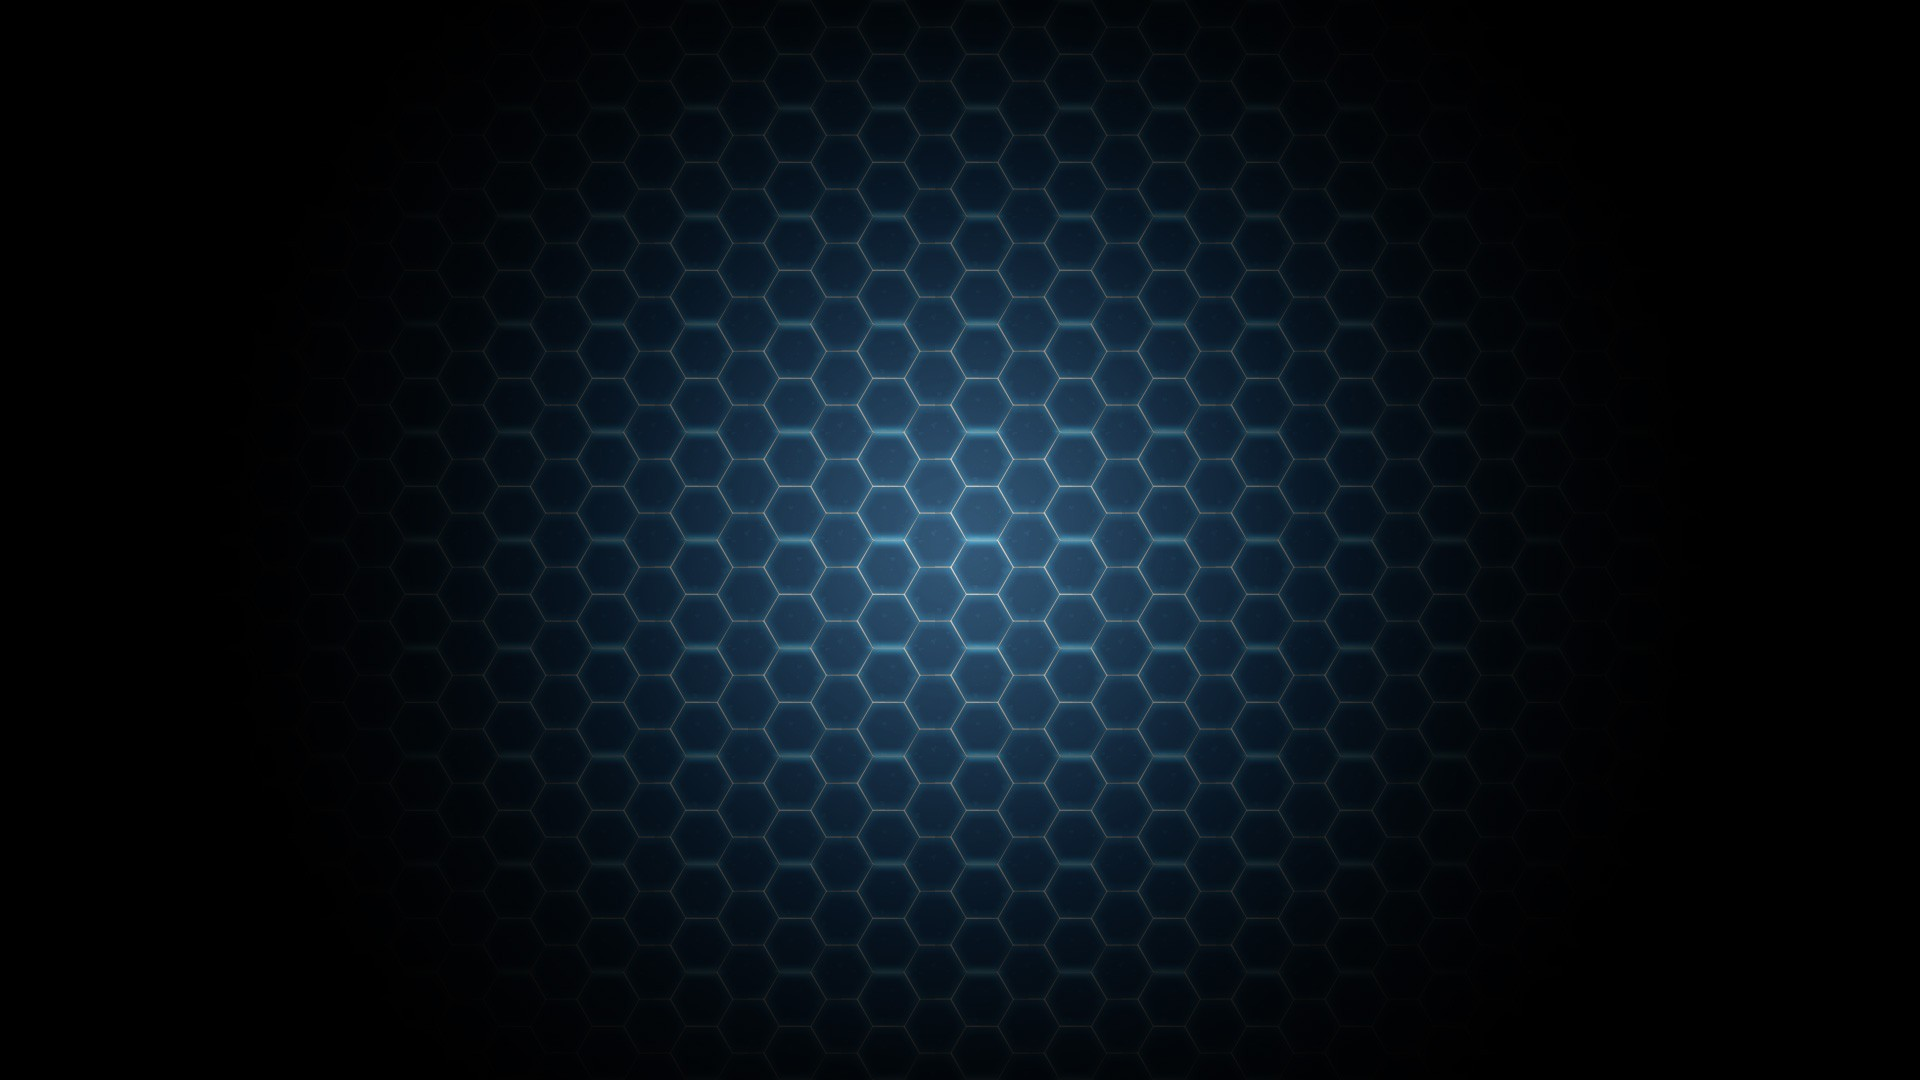 Blue And Black Backgrounds, Blue And Black Wallpapers (44+)